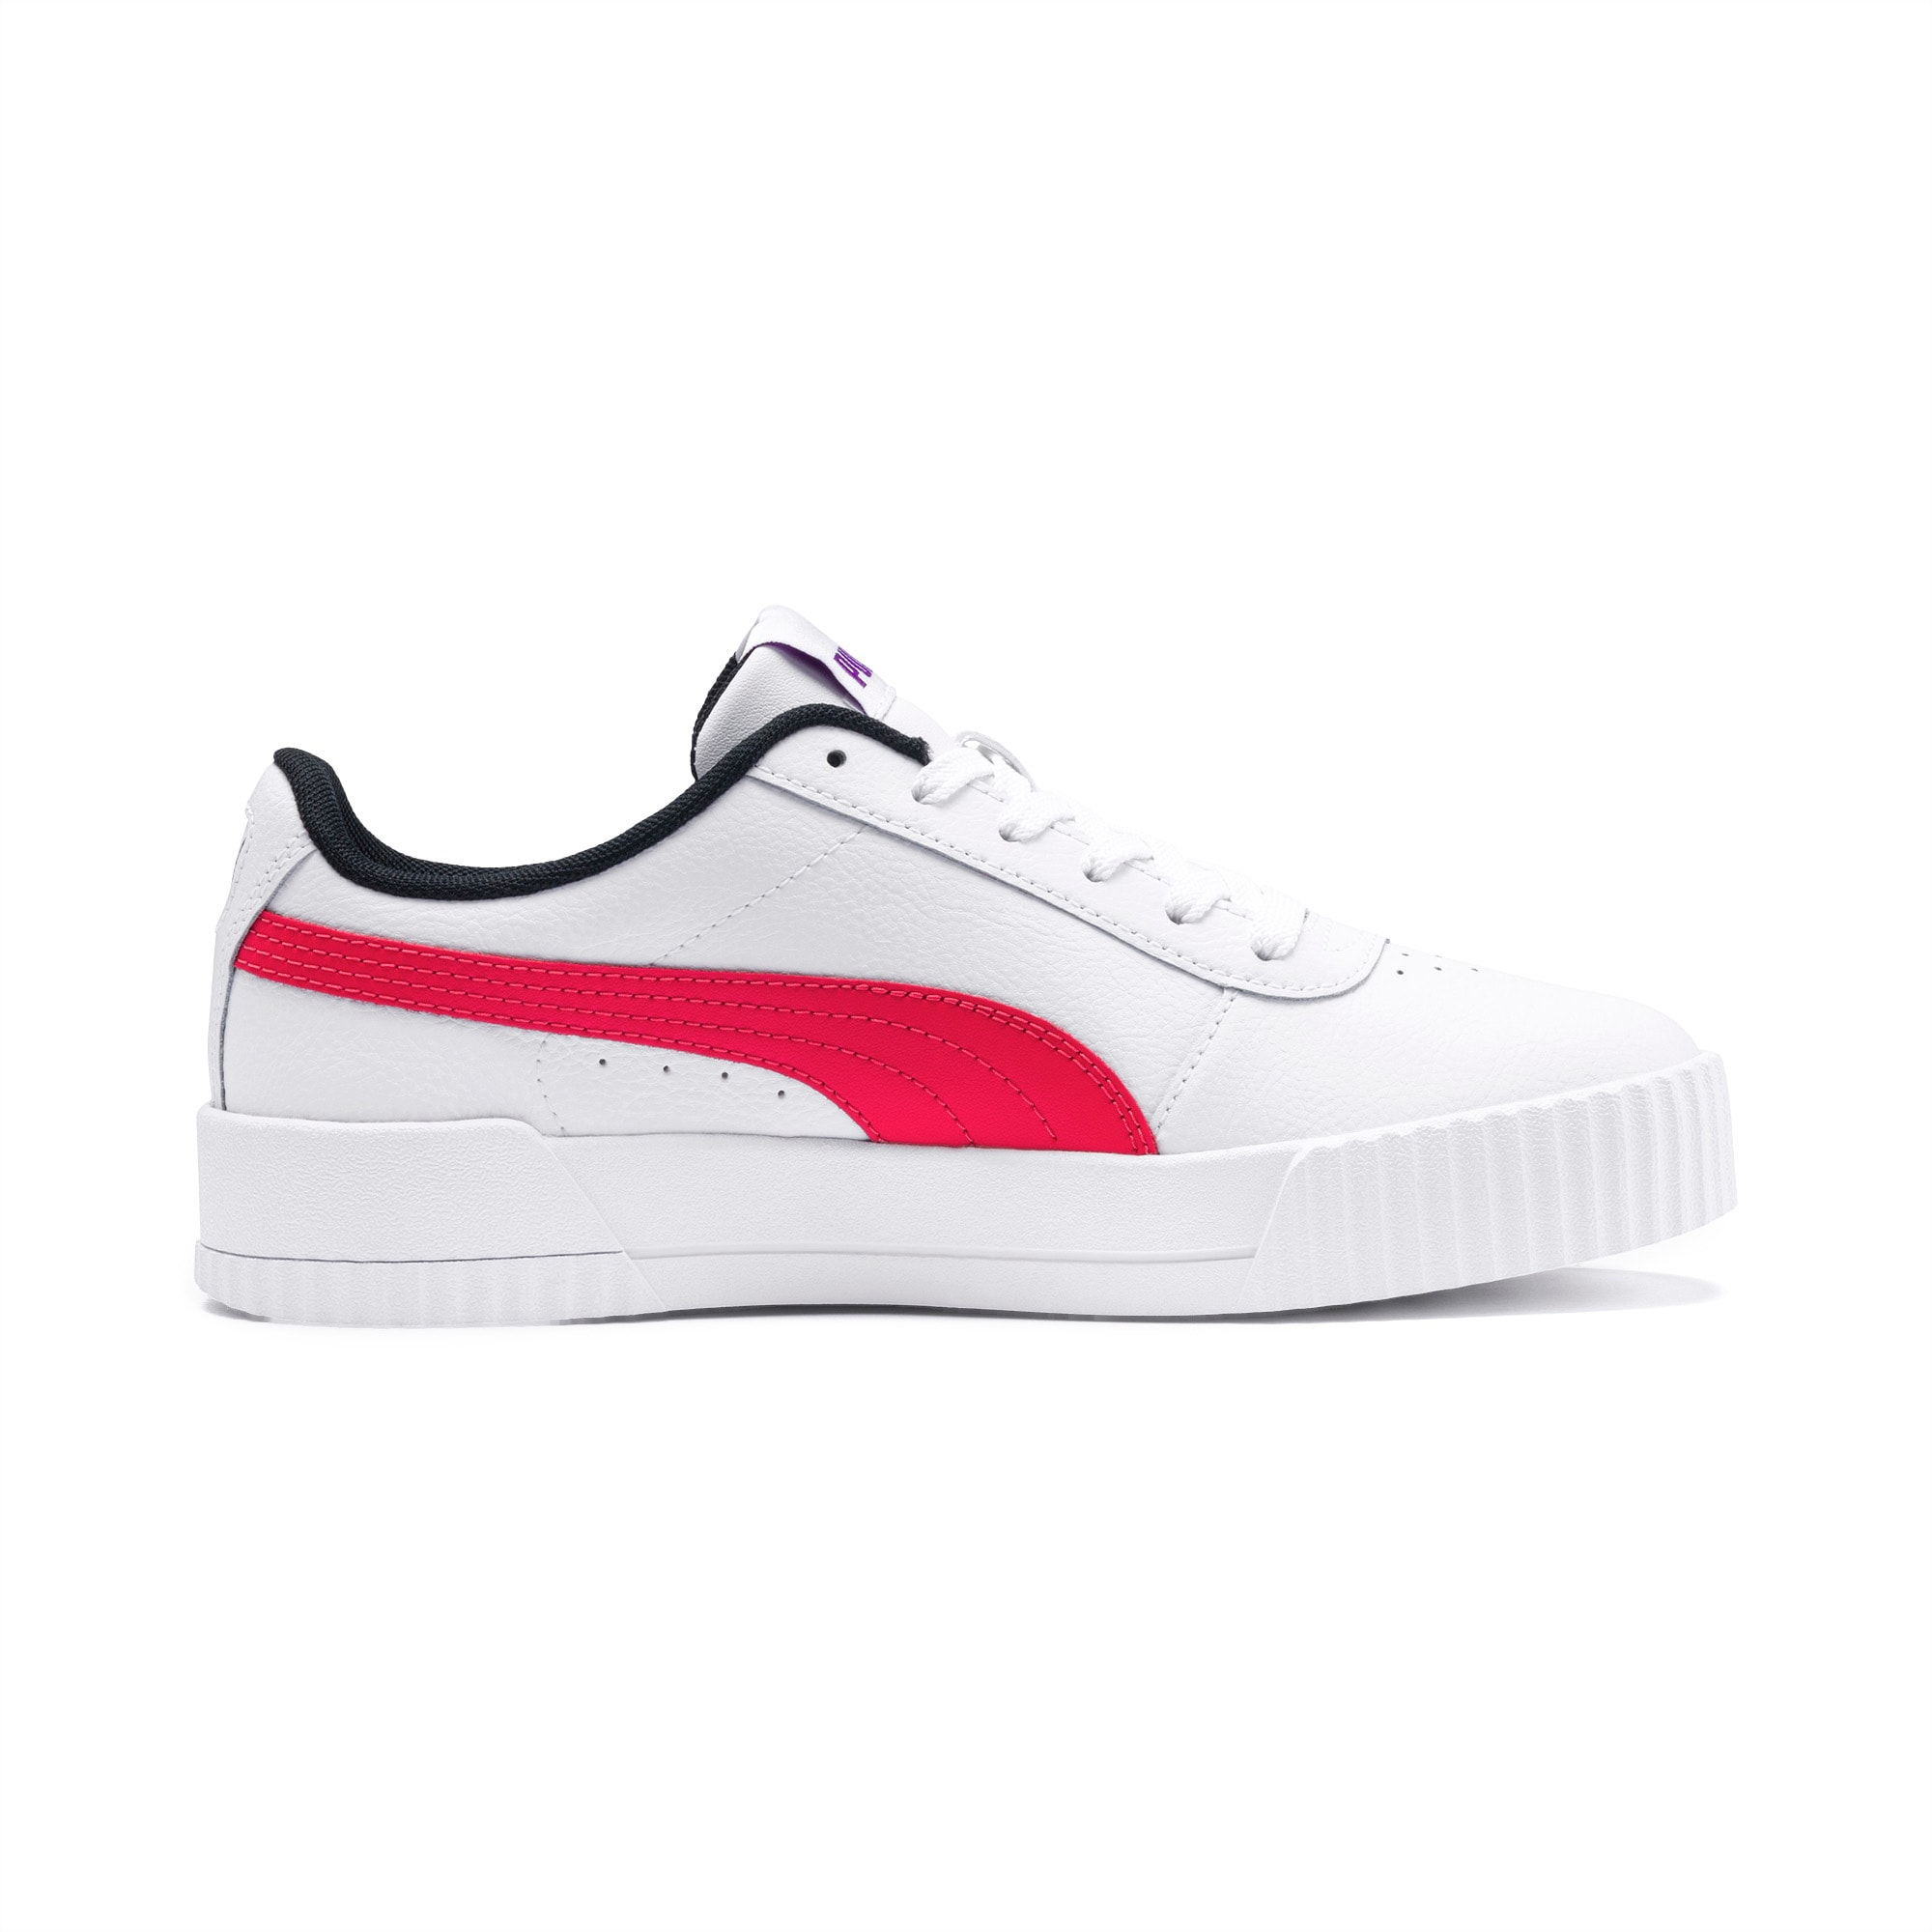 Carina Leather Women's Sneakers